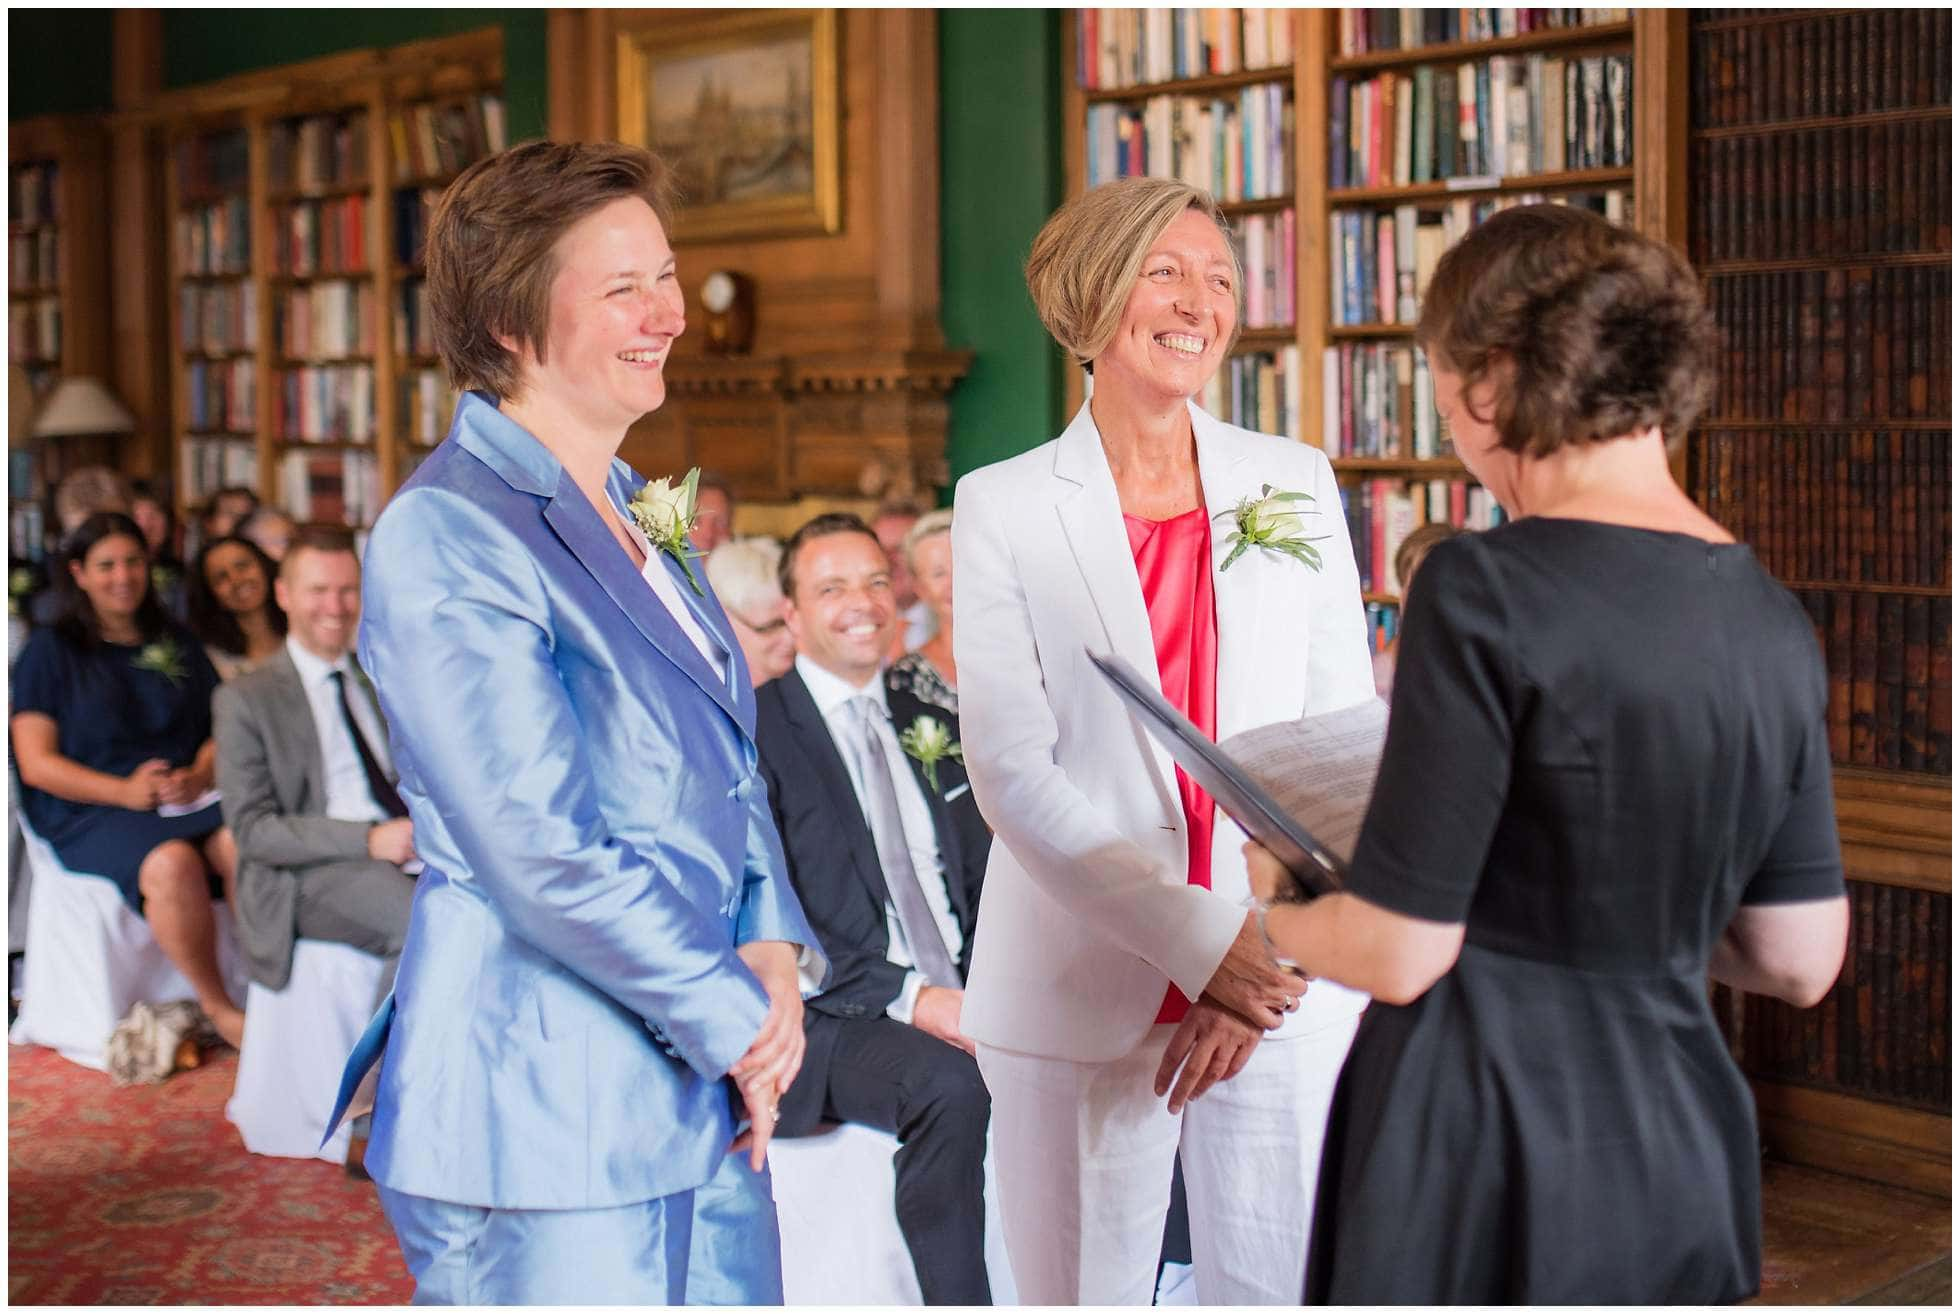 An awesome wedding at Unversity Women's Club, Mayfair, London